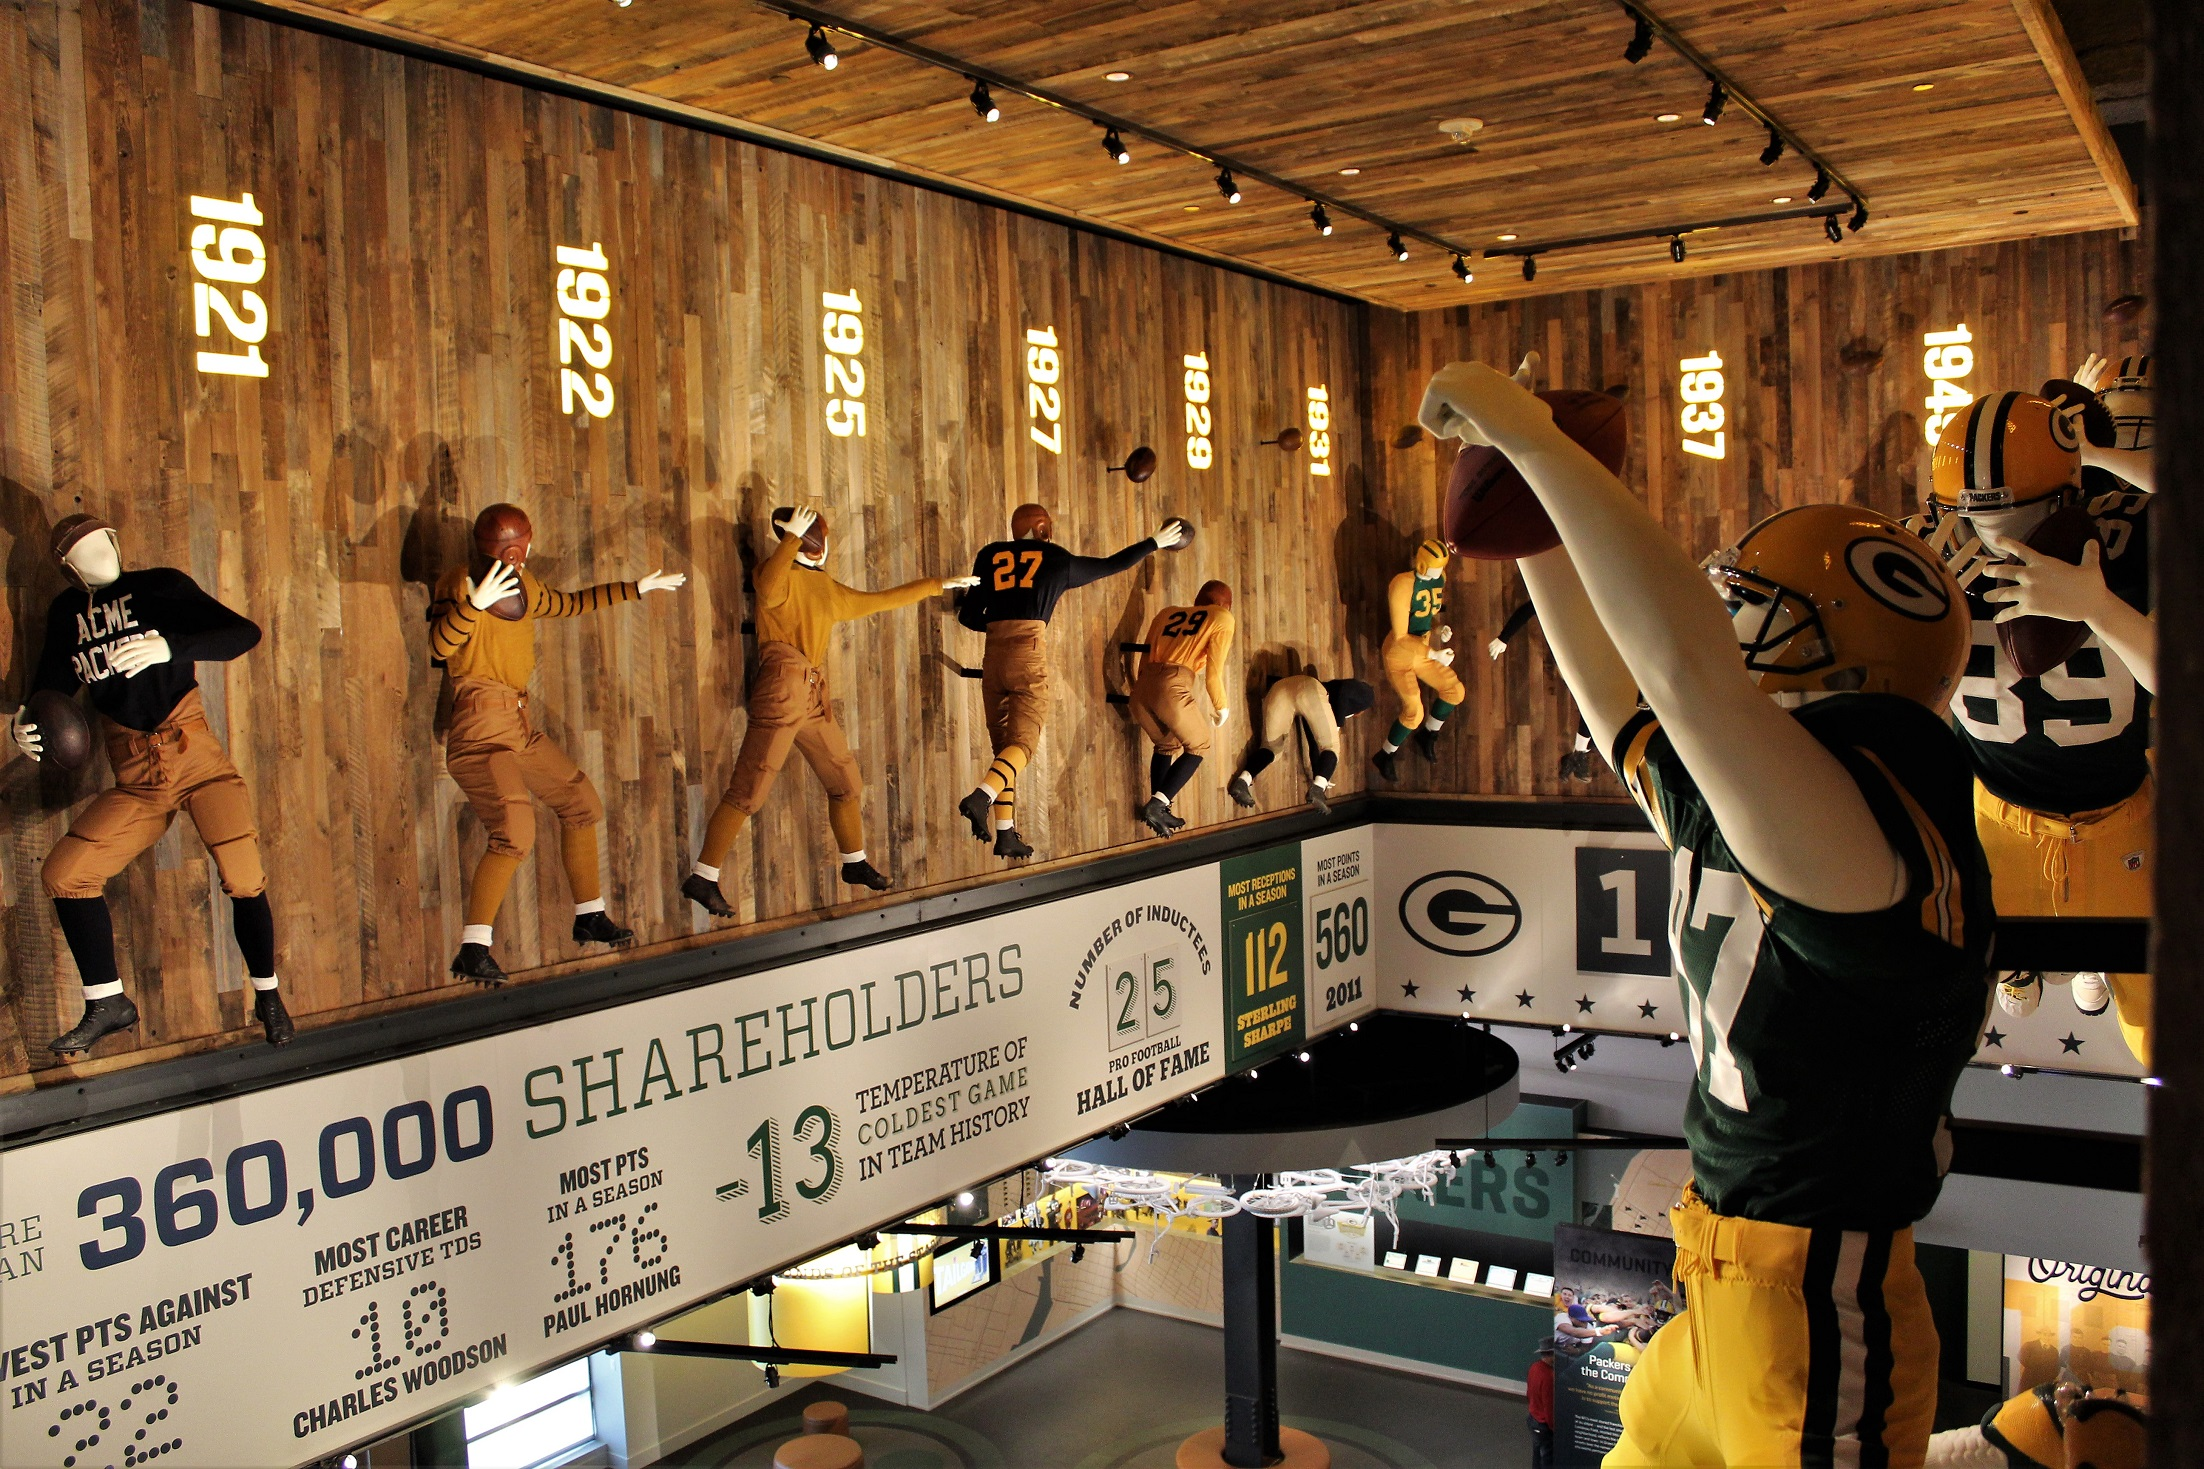 Packers Hall of Fame Exhibit - Evolution of the Packers uniforms.